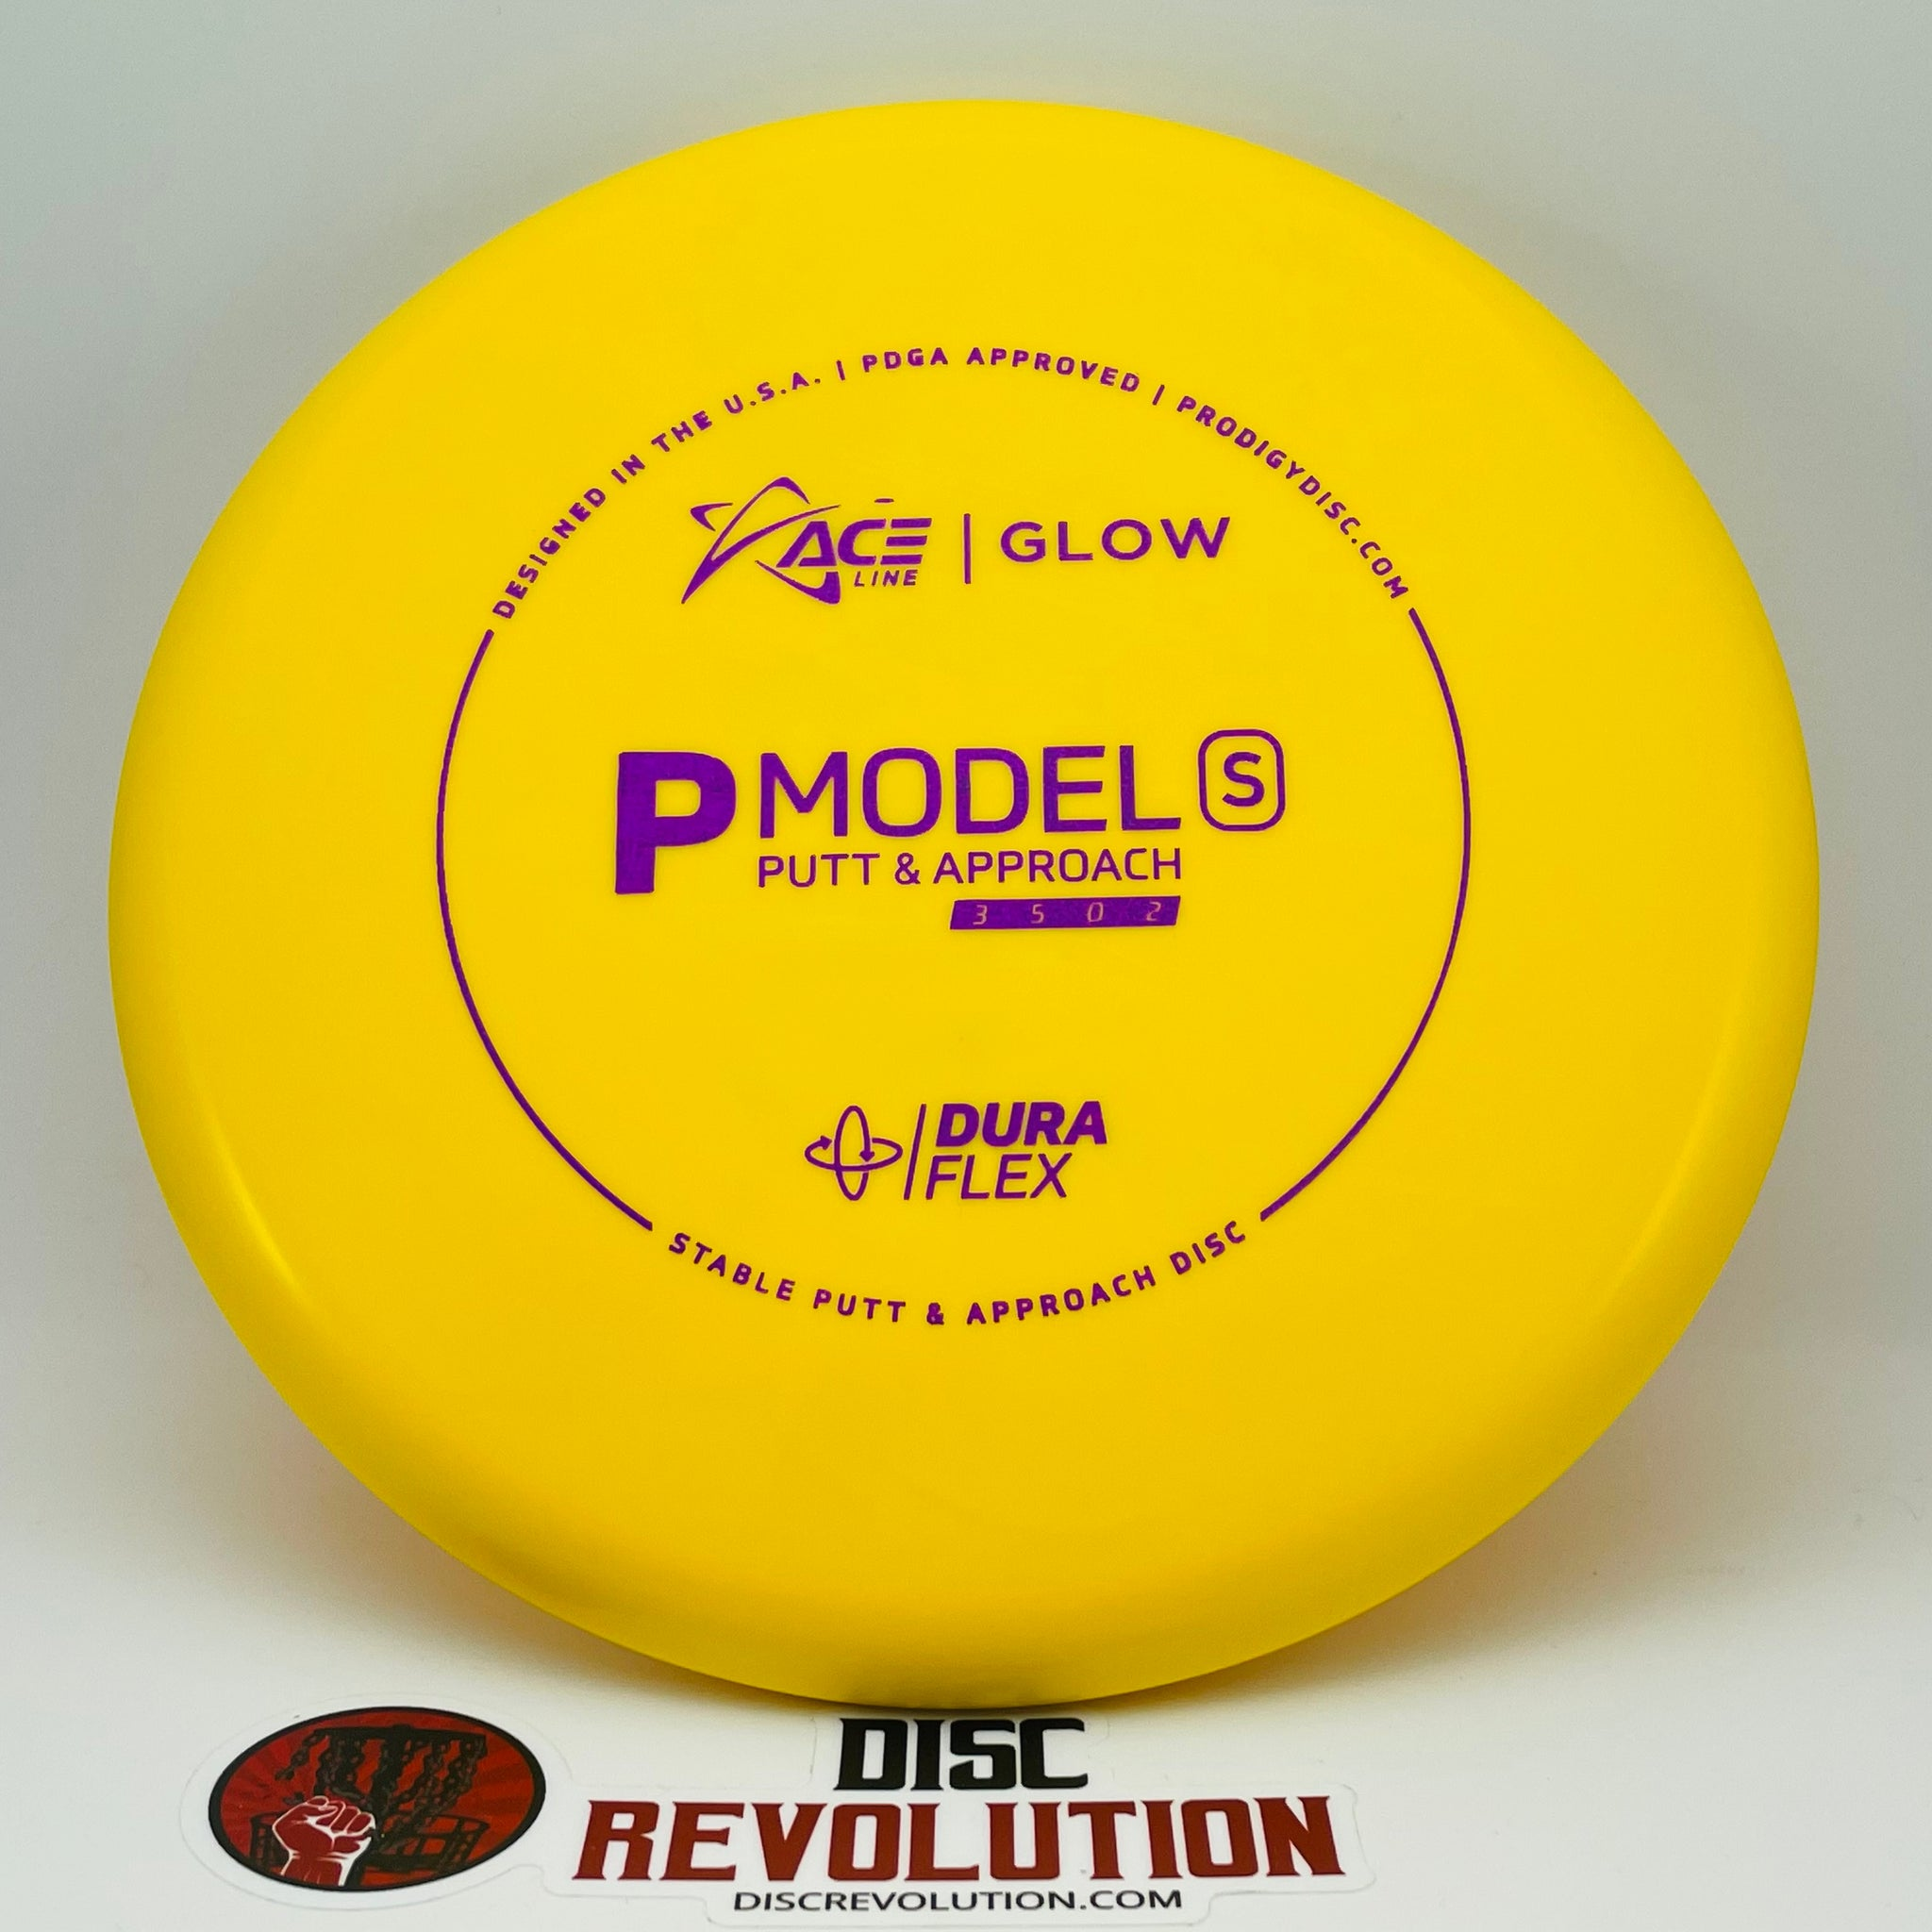 ACE LINE P MODEL S DURAFLEX GLOW PLASTIC - CALE LEIVISKA BOTTOM STAMP